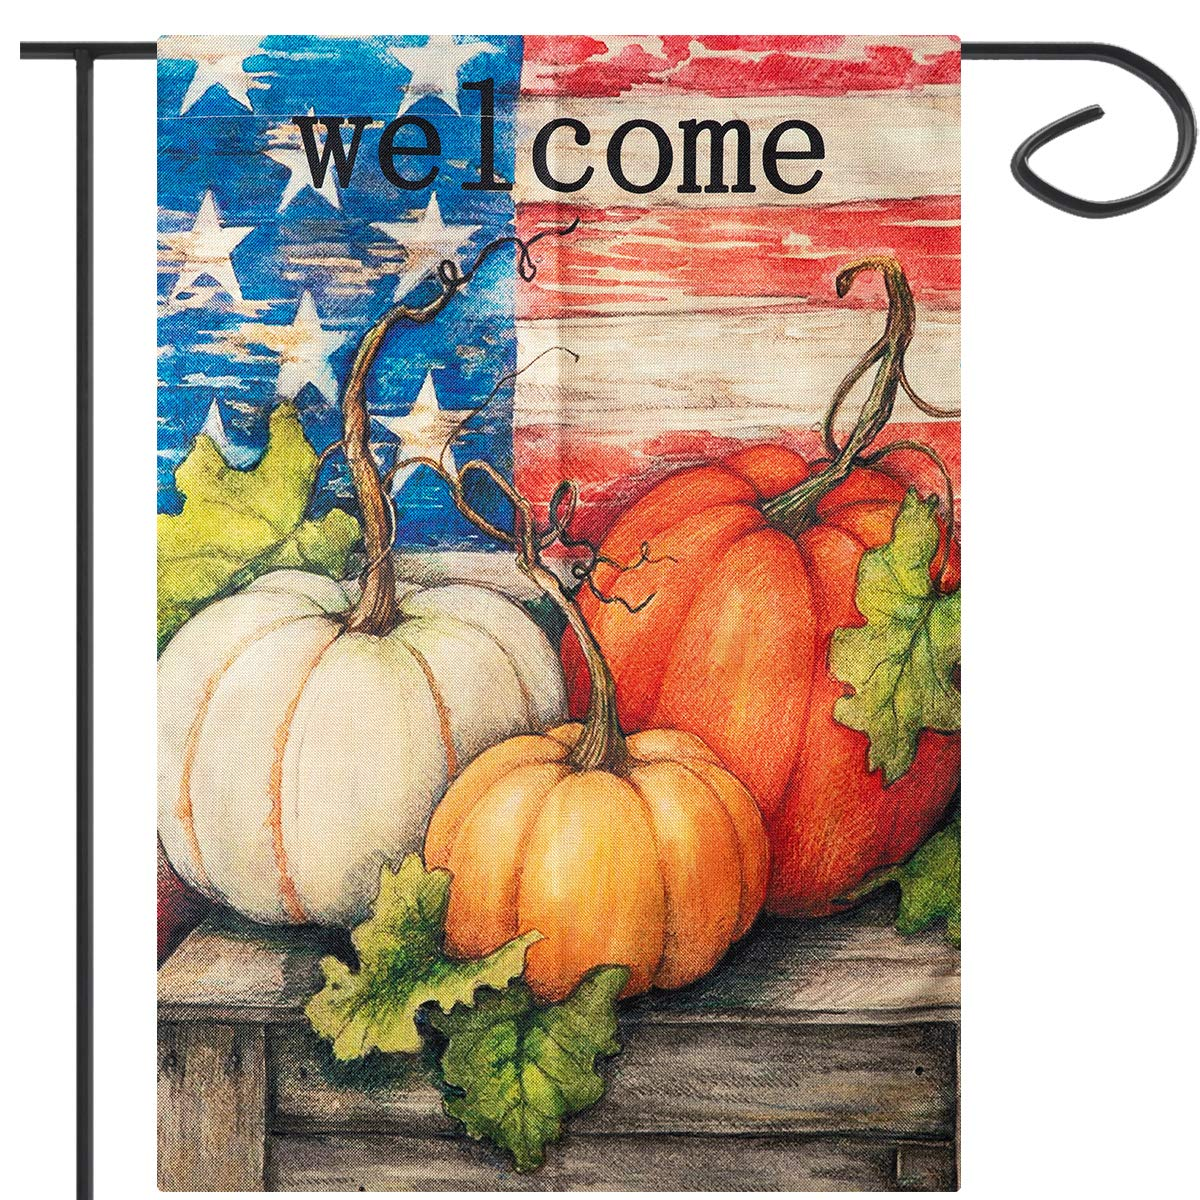 Apipi 18 x 12 Inch Welcome Fall Garden Flag- Double Sided Patriotic Decorative Thanksgiving Autumn Harvest Pumpkin House Flag, Rustic Country Burlap Garden Yard Flag for Home Seasonal Outdoor Decor